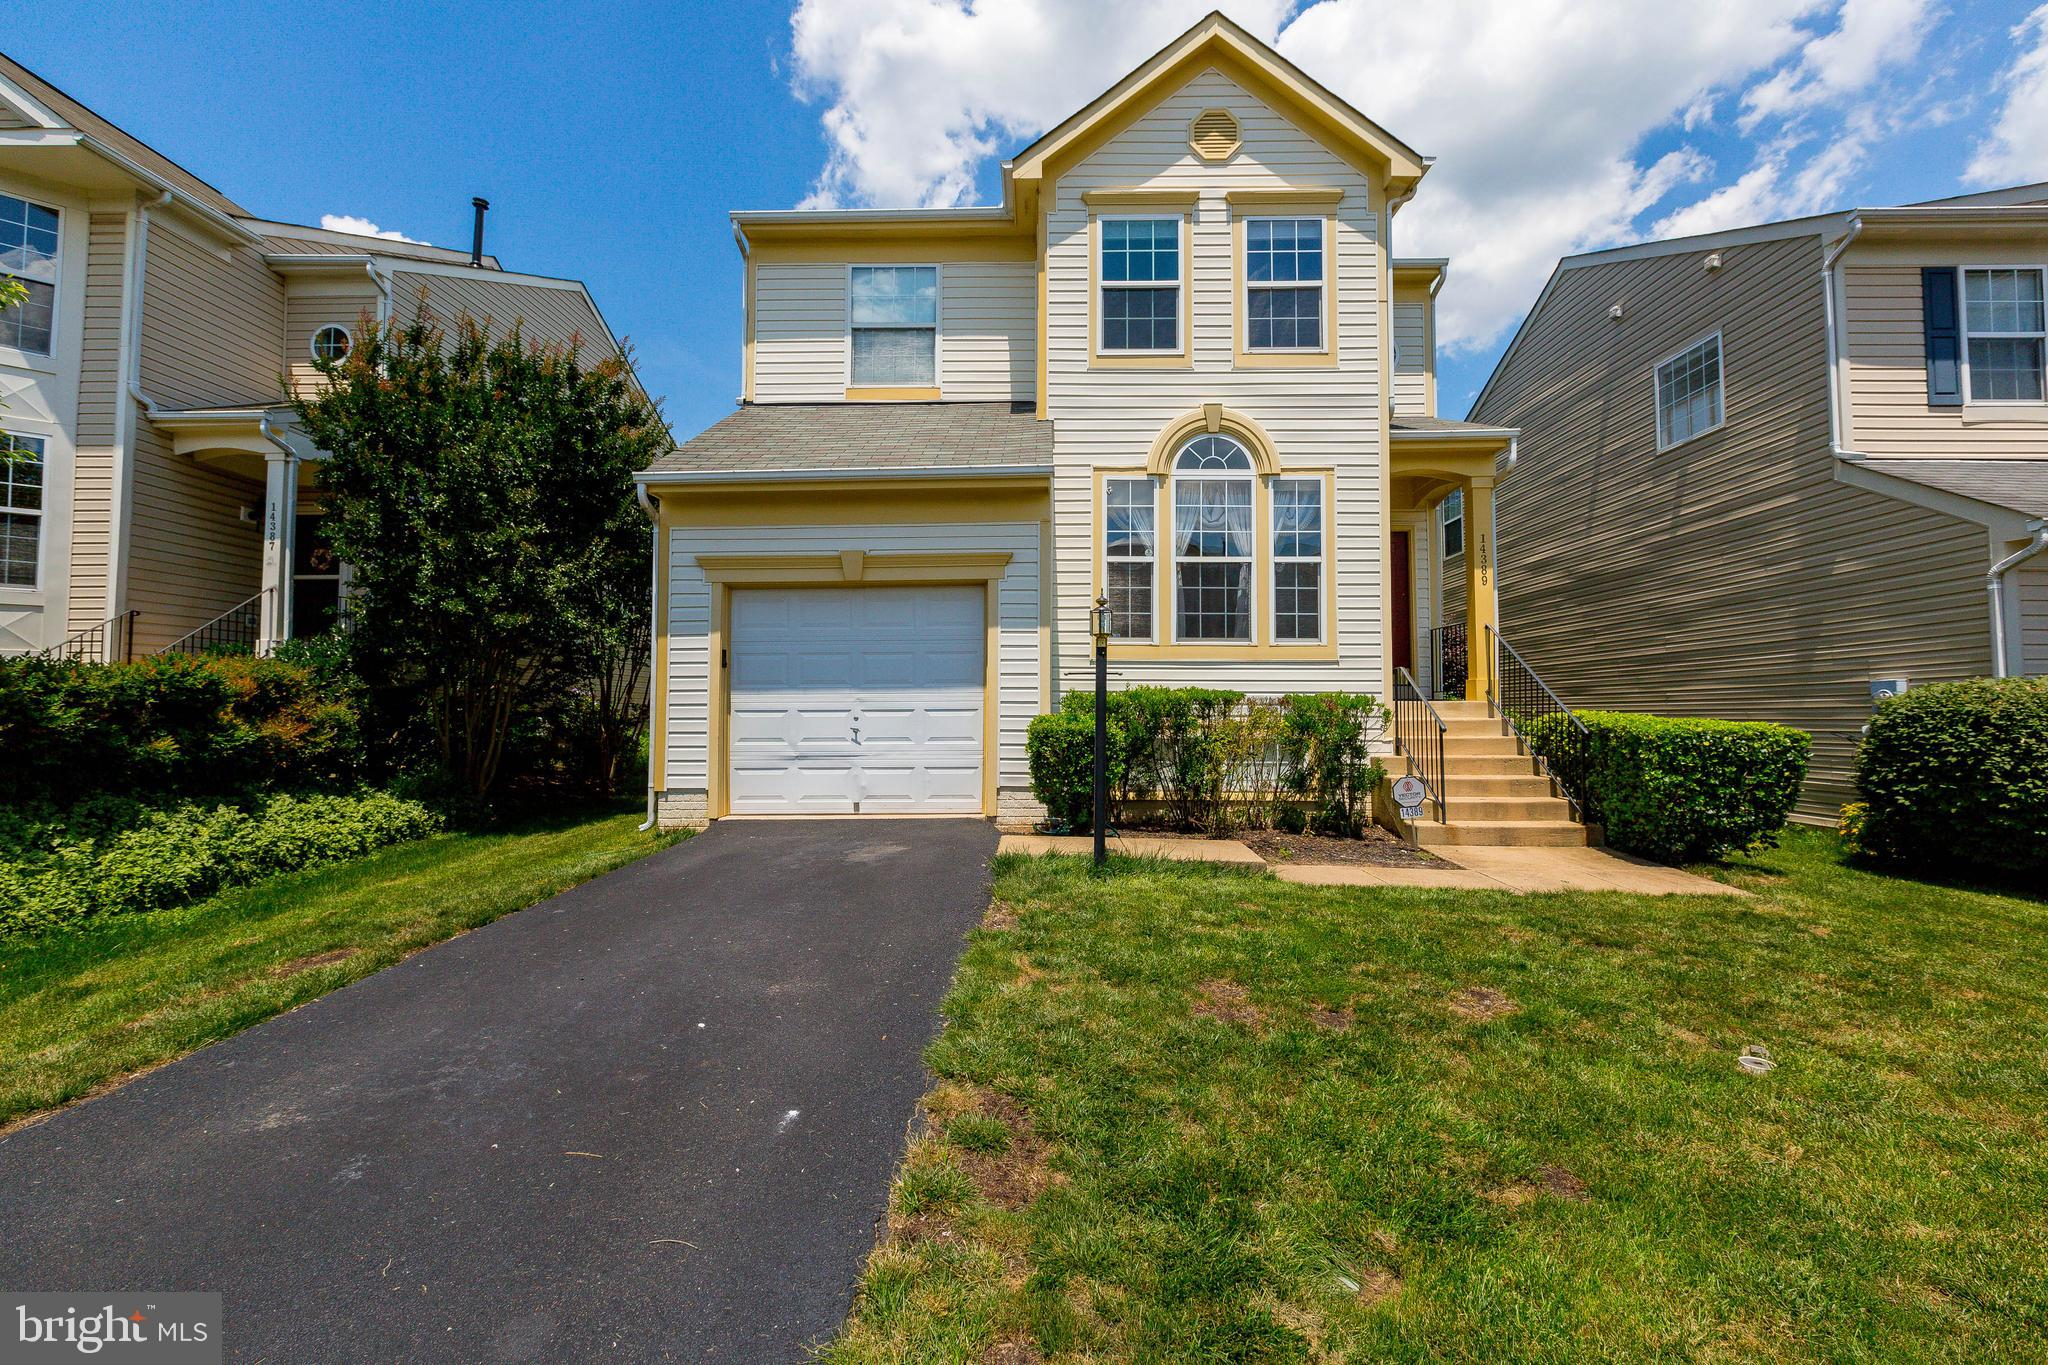 OVER 2500 SQFT METICULOUSLY MAINTAINED, MOVE-IN READY, GLISTENING HARDWOOD ON MAIN LEVEL, SPACIOUS BEDROOMS, FULLY FINISHED BASEMENT.  Recent updates include:  ***2016 Custom paint,new kitchen granite counter tops***2017 New Water Heater***2018 New Island with granite counter tops  New Backsplash, New stained cabinet, New dishwasher*** 2019 New stove, New microwave, Upstairs Full Bathroom remodeled, Master Bathroom Flooring, New AC & Carpet